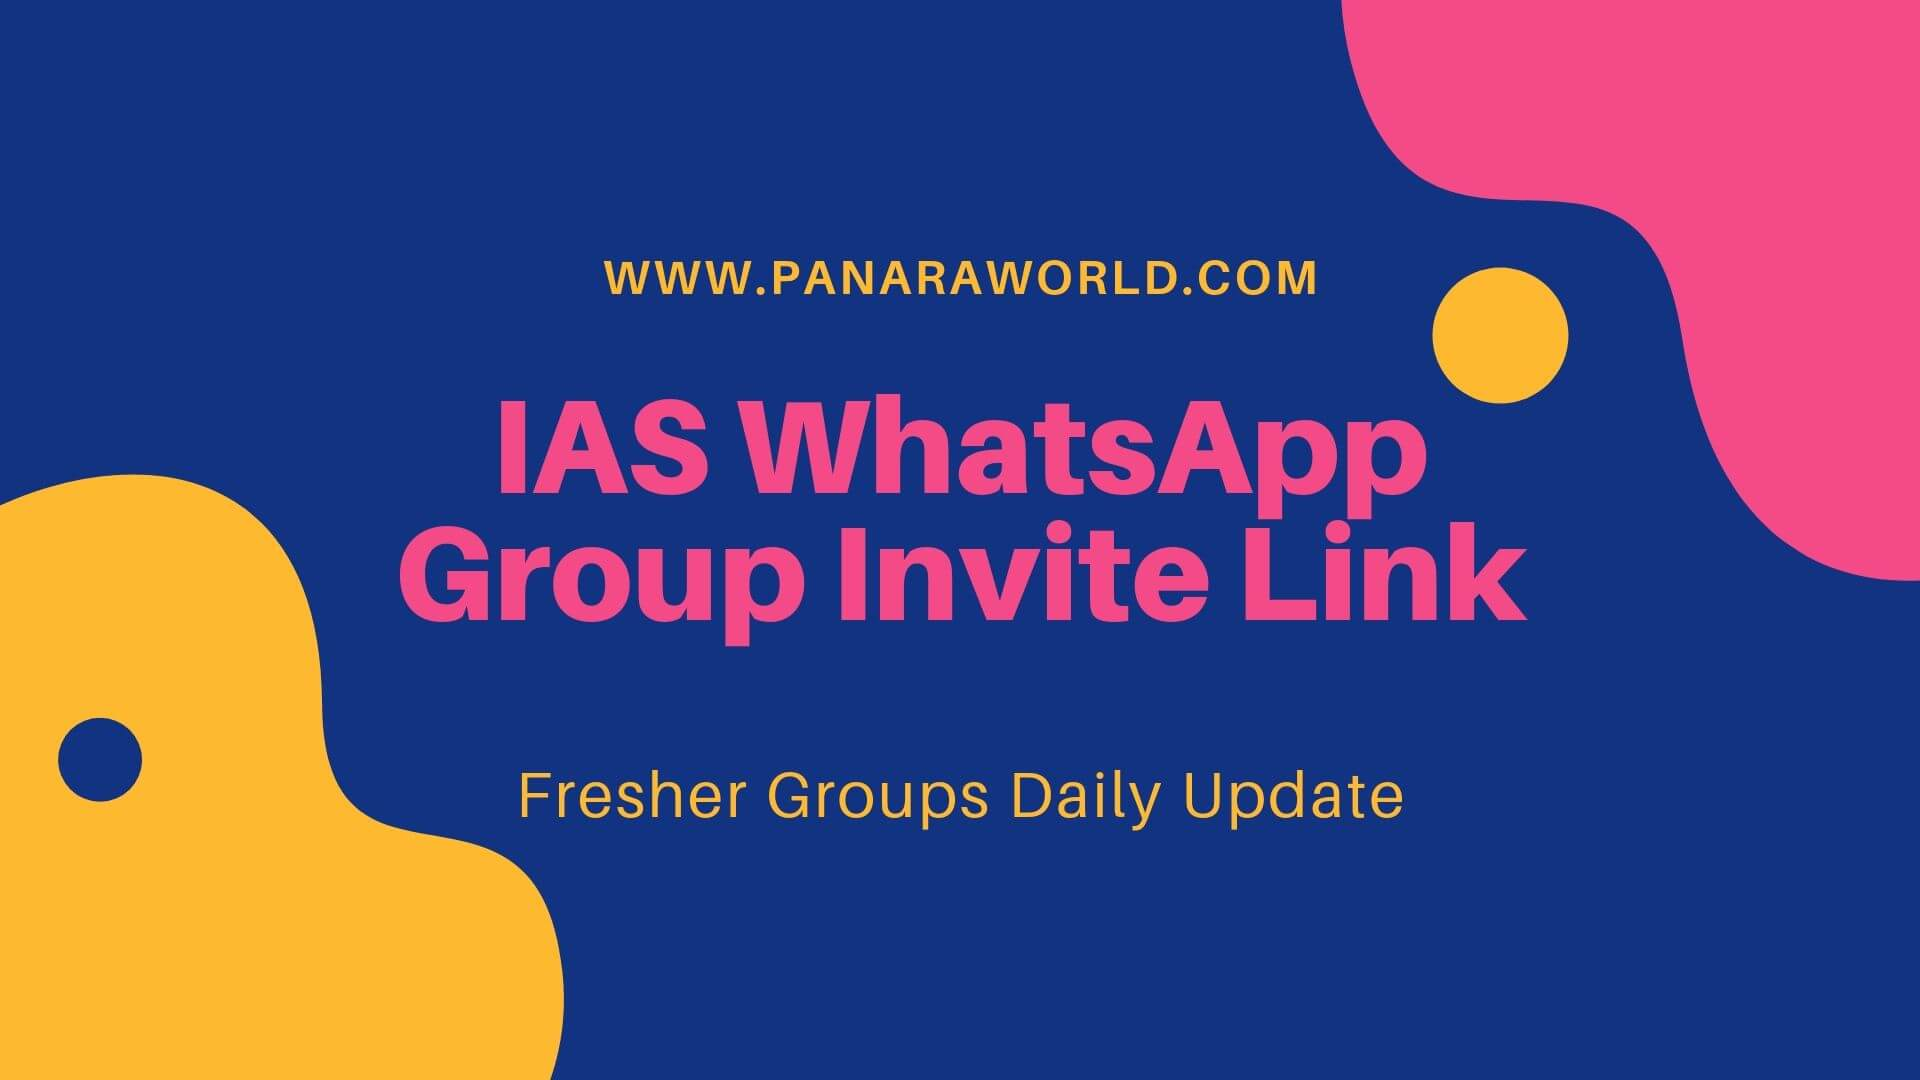 IAS WhatsApp Group Invite Link